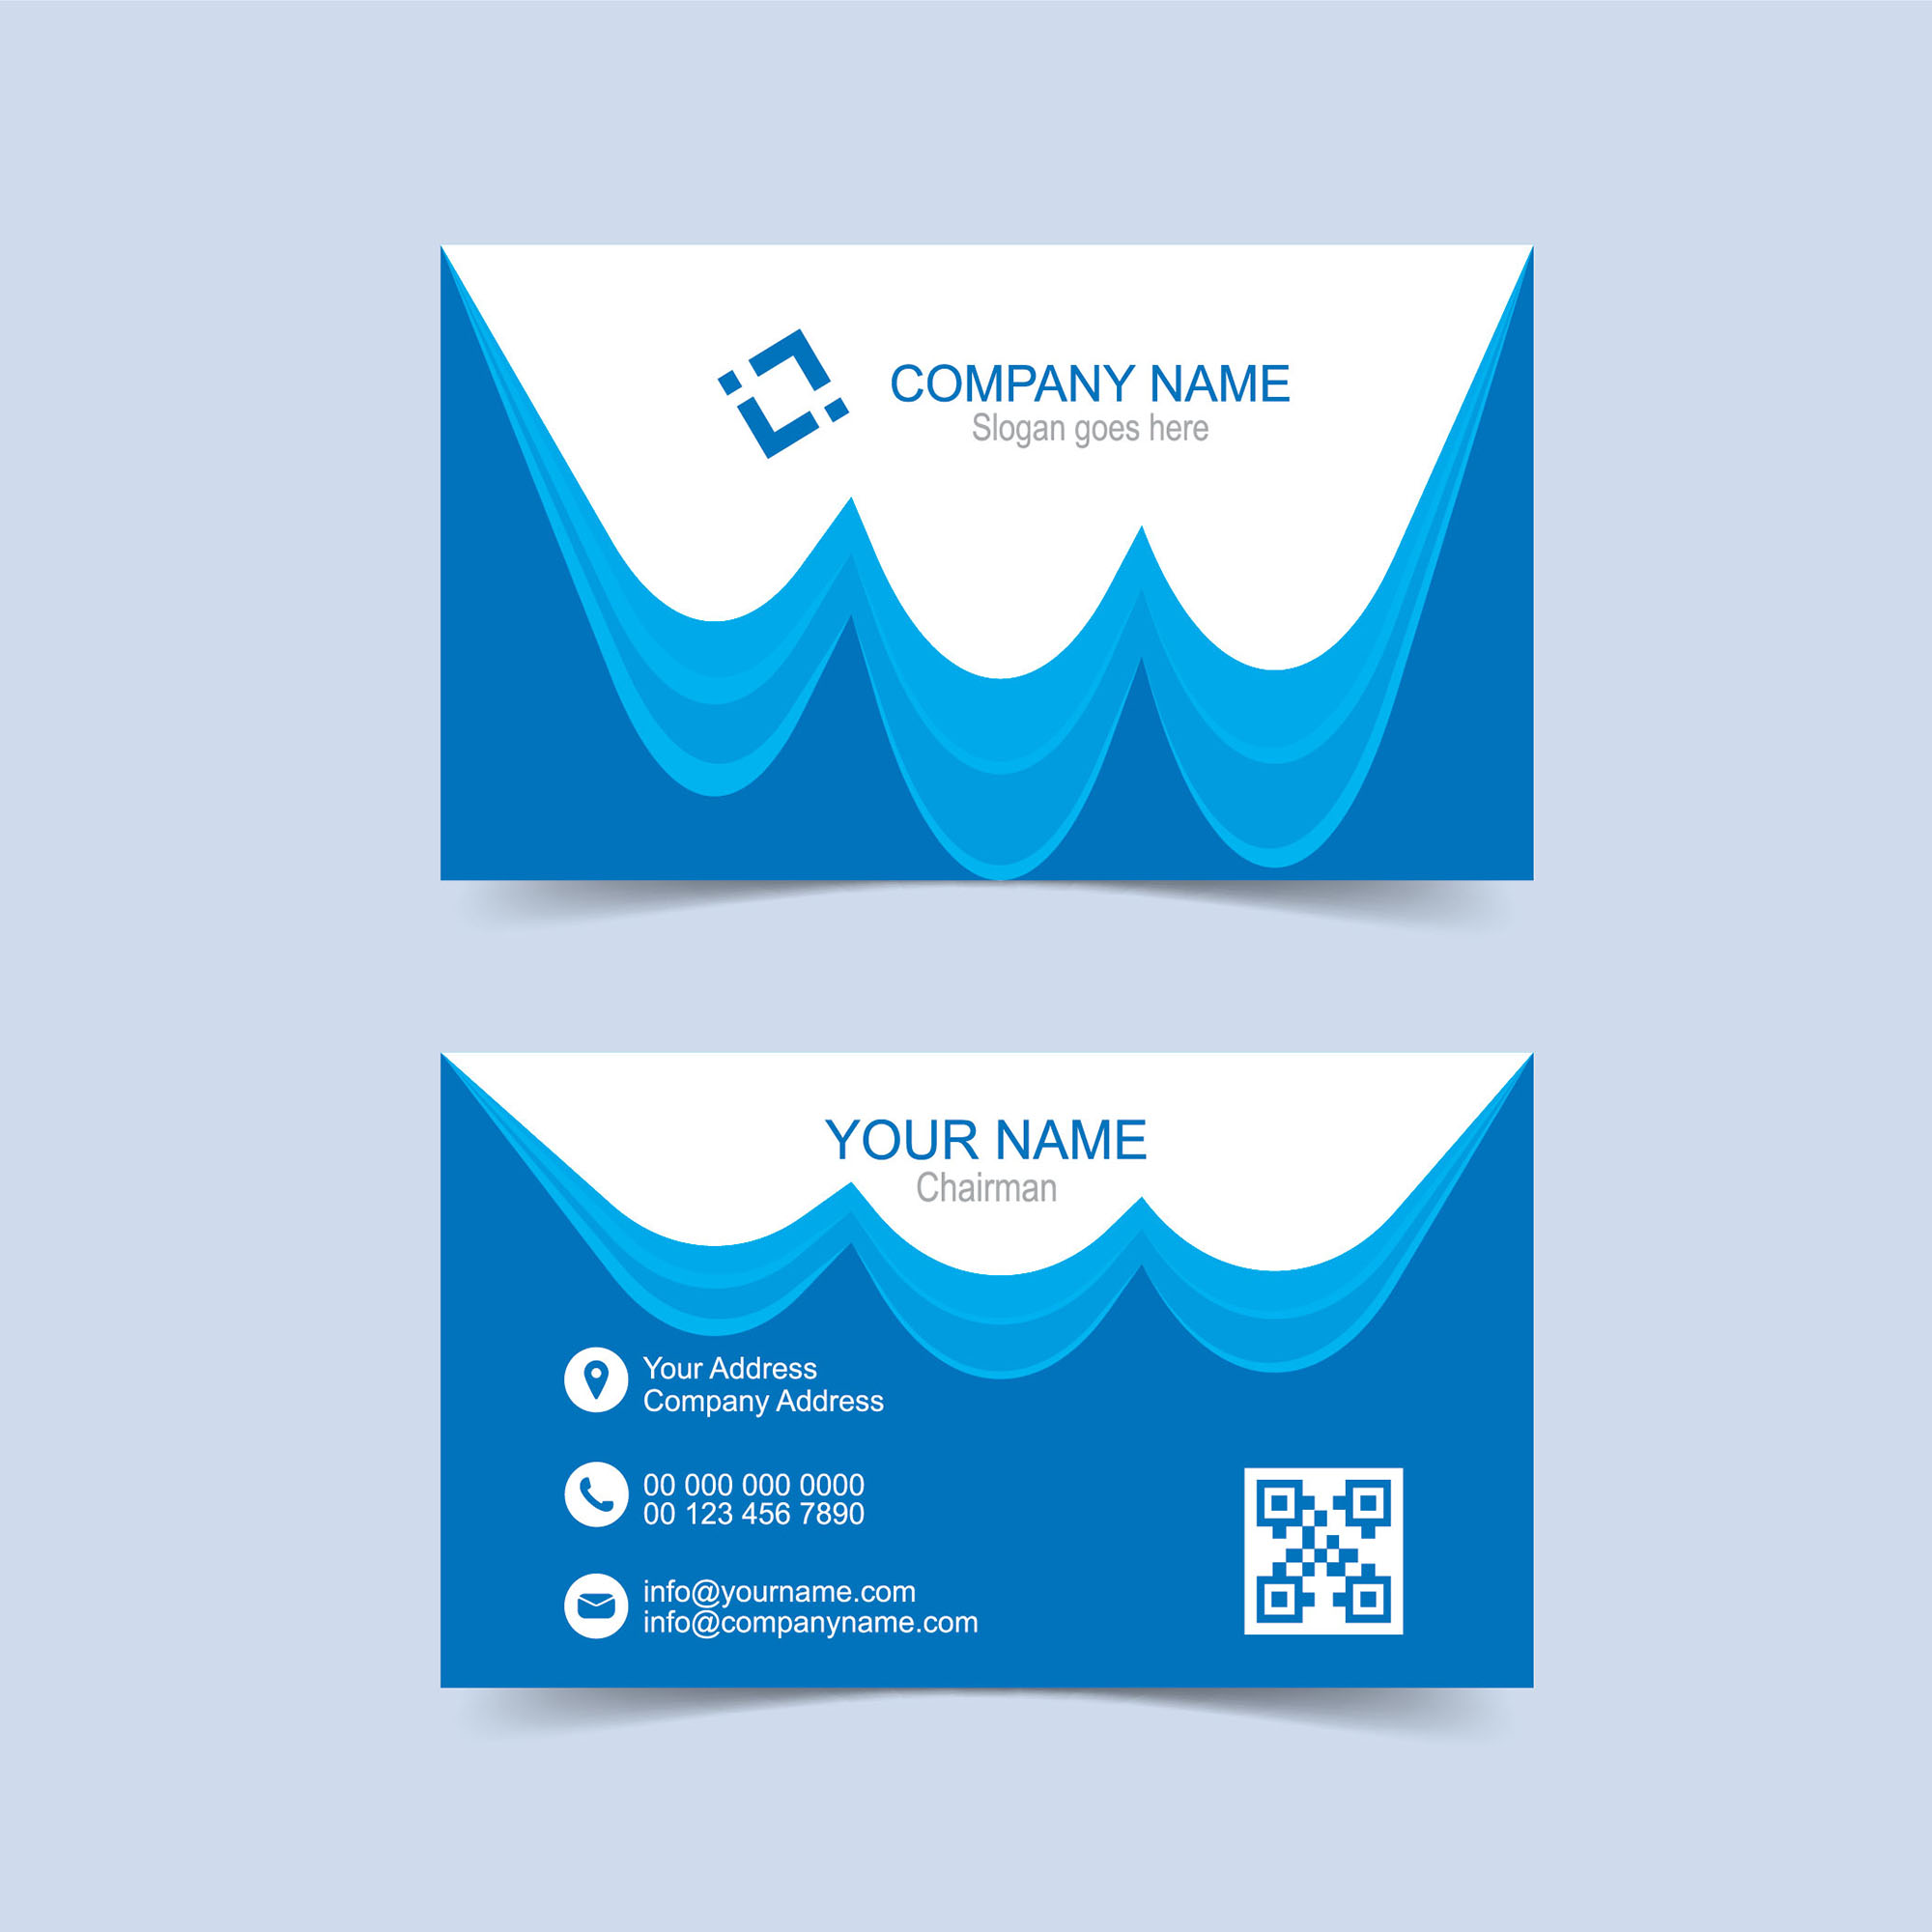 Corporate Business Card Free Download - Print Ready - Wisxi.com